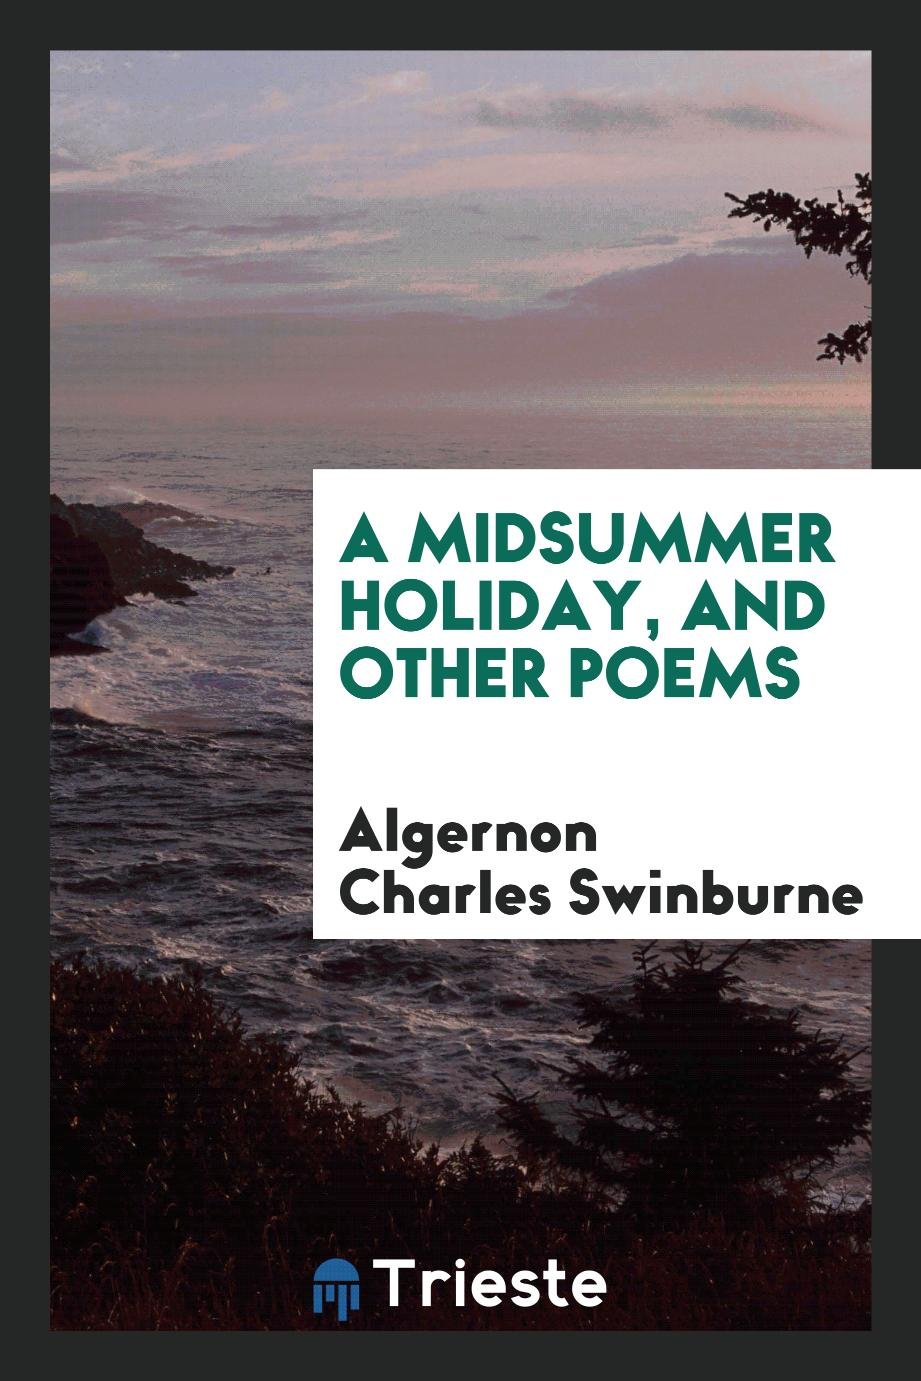 A Midsummer Holiday, and Other Poems